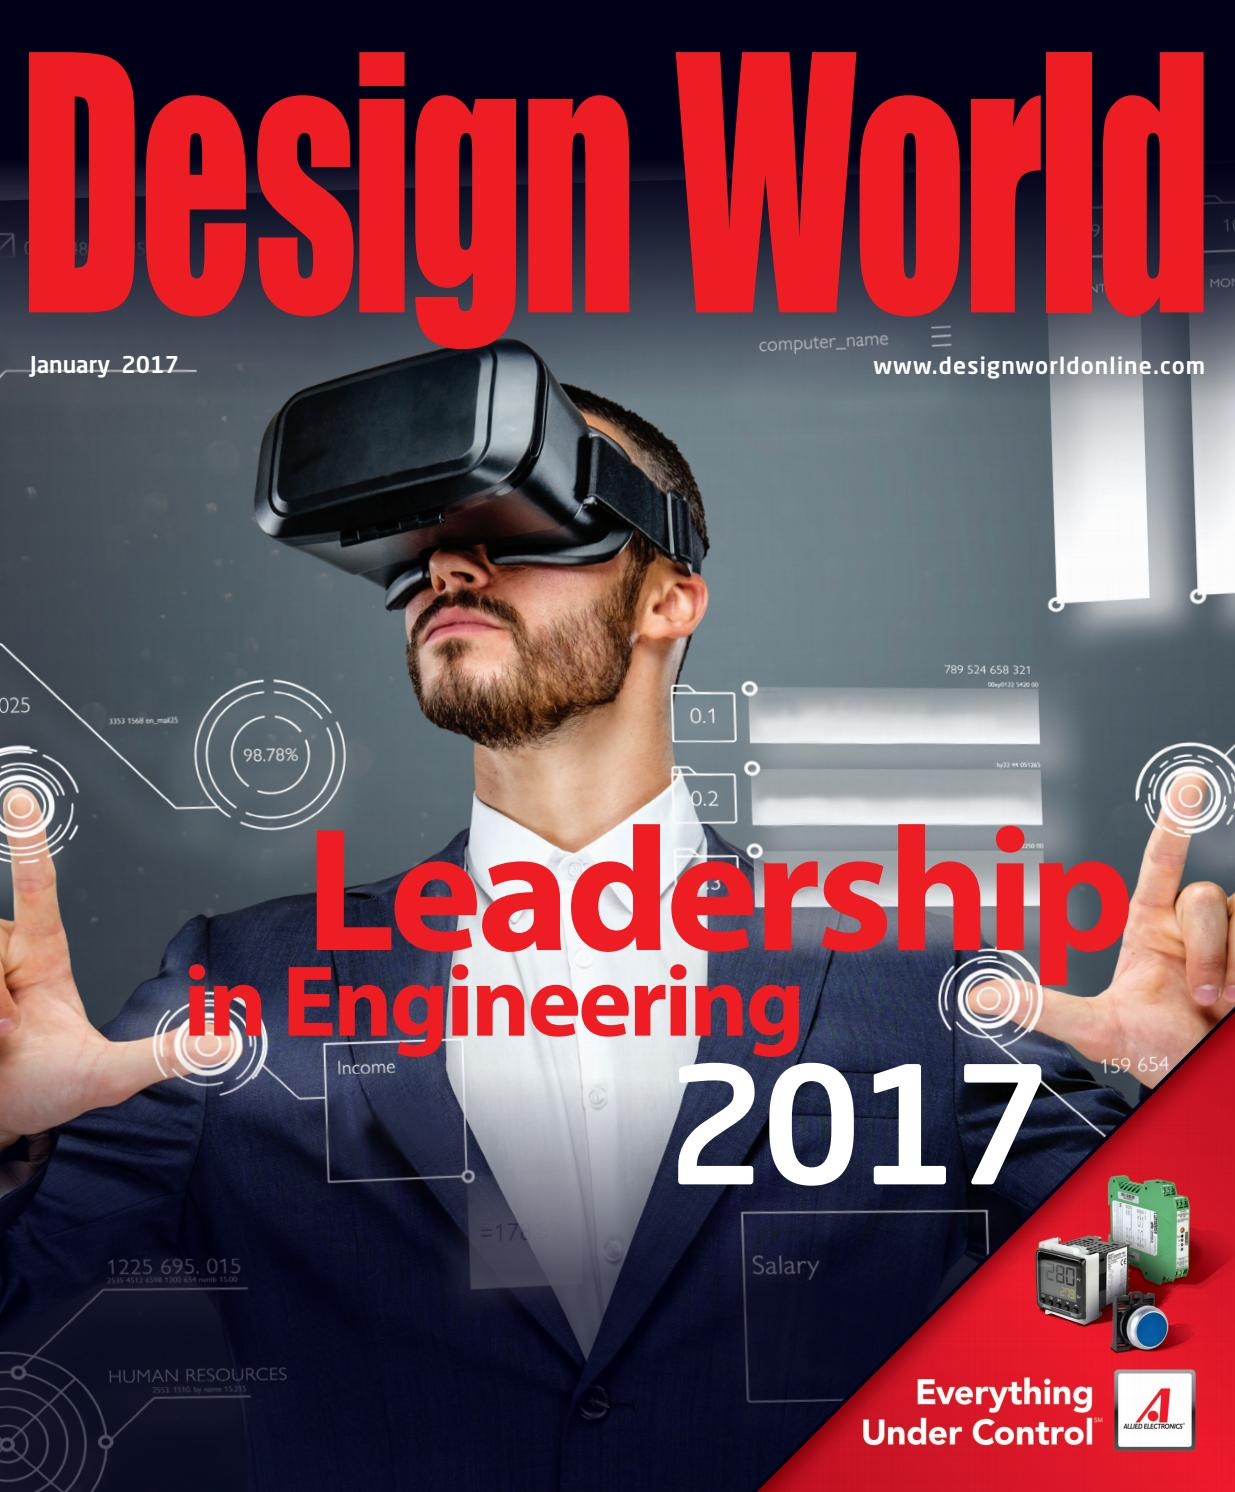 Design World January 2017 Leadership Pages By Wtwh Media Llc Issuu Surfacemounted Junction Box 75 X Mm Ip65 Ap75 Abb Oy Wiring